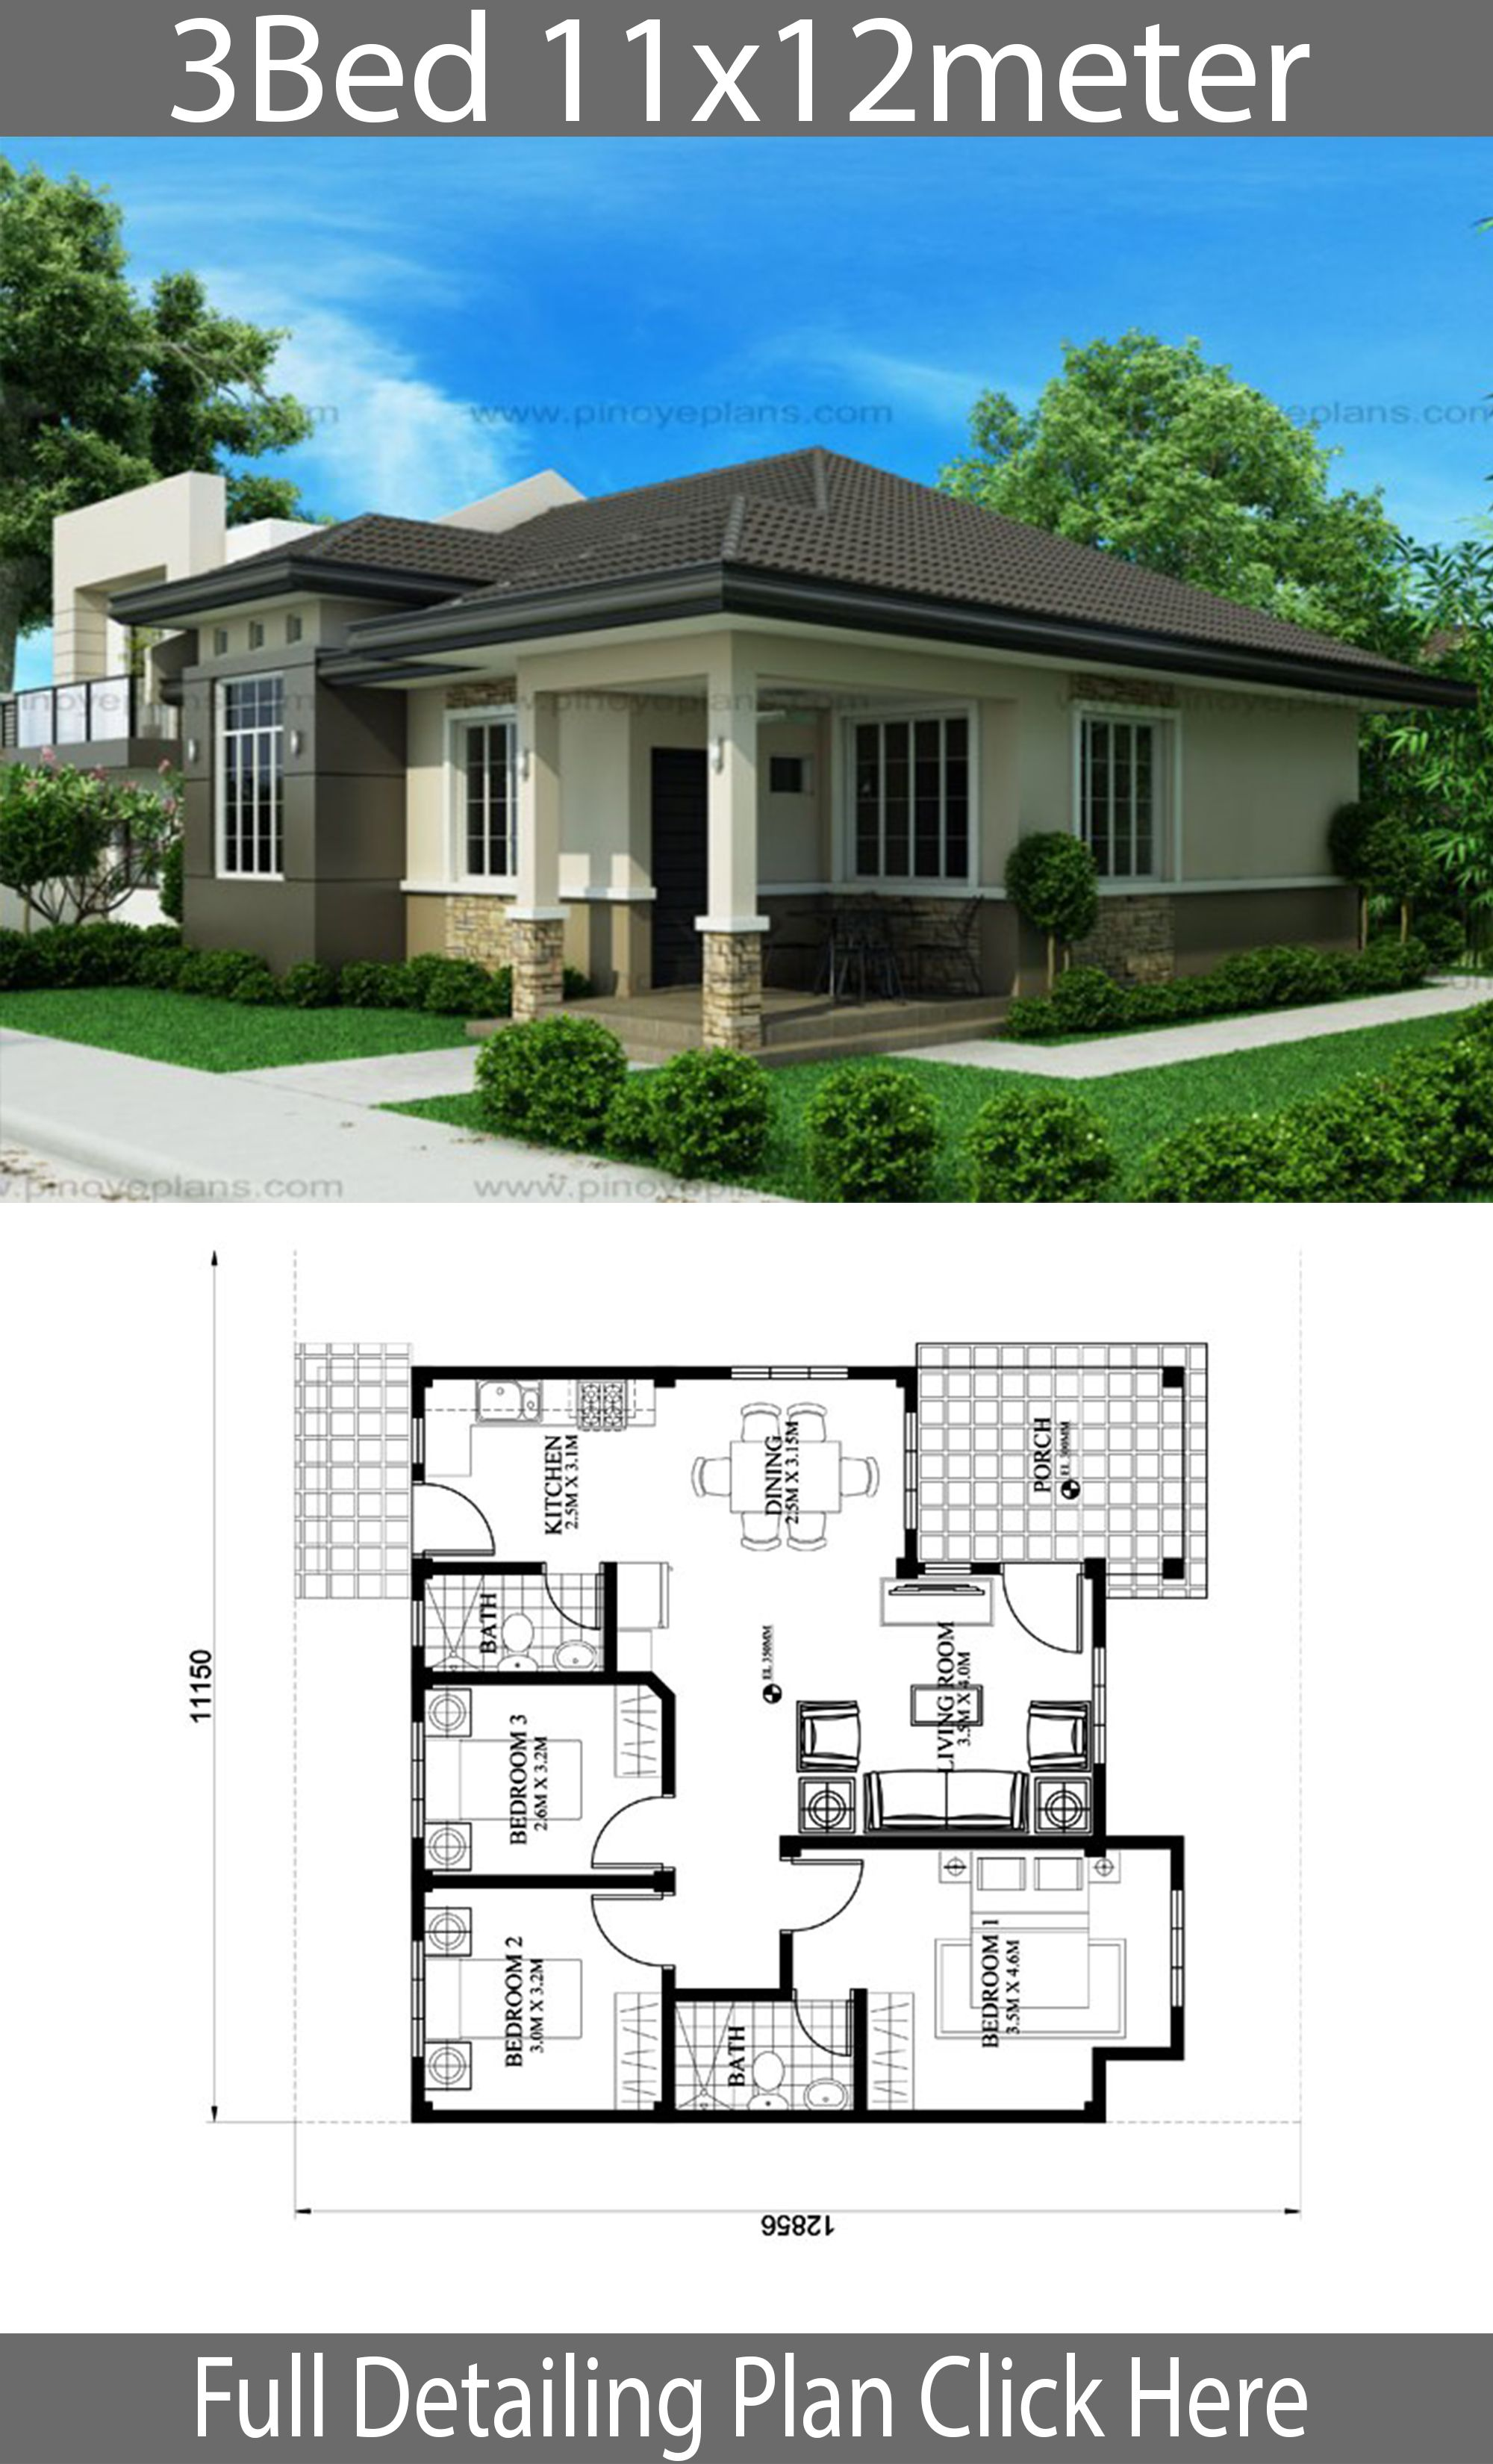 House Design 11x12m With 3 Bedrooms House Plan Map In 2020 Small House Design Plans Simple House Design Simple Bungalow House Designs